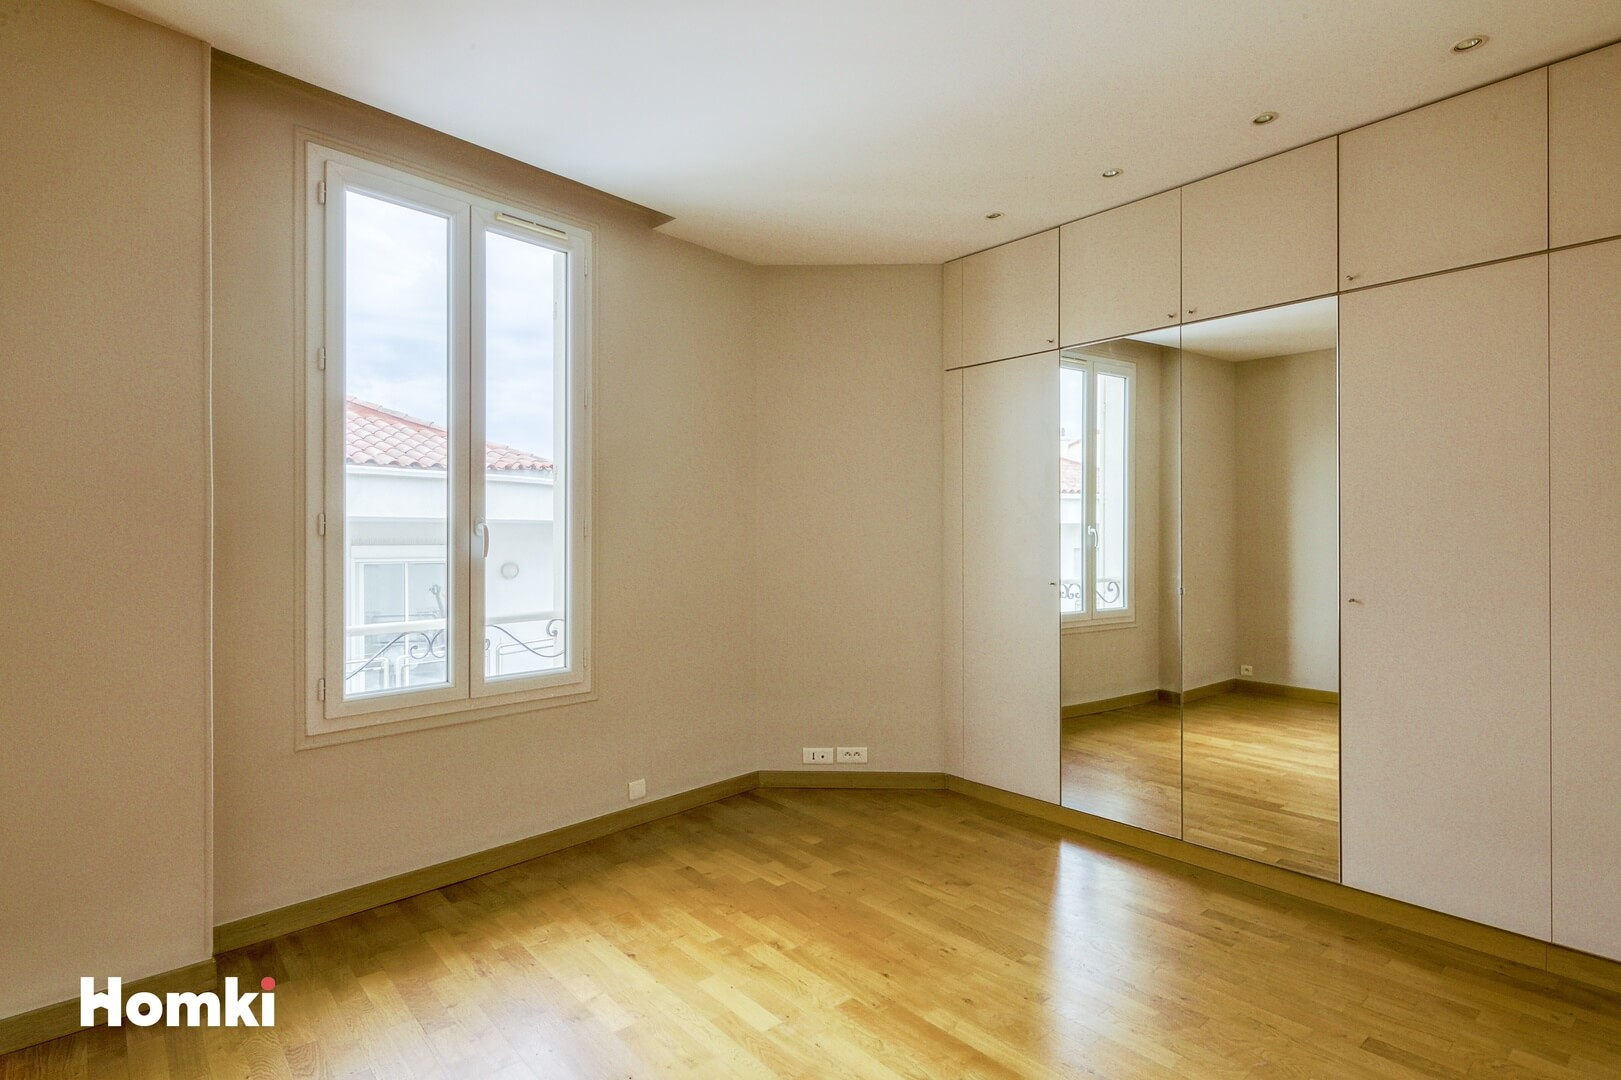 Homki - Vente Appartement  de 55.0 m² à Cannes 06400